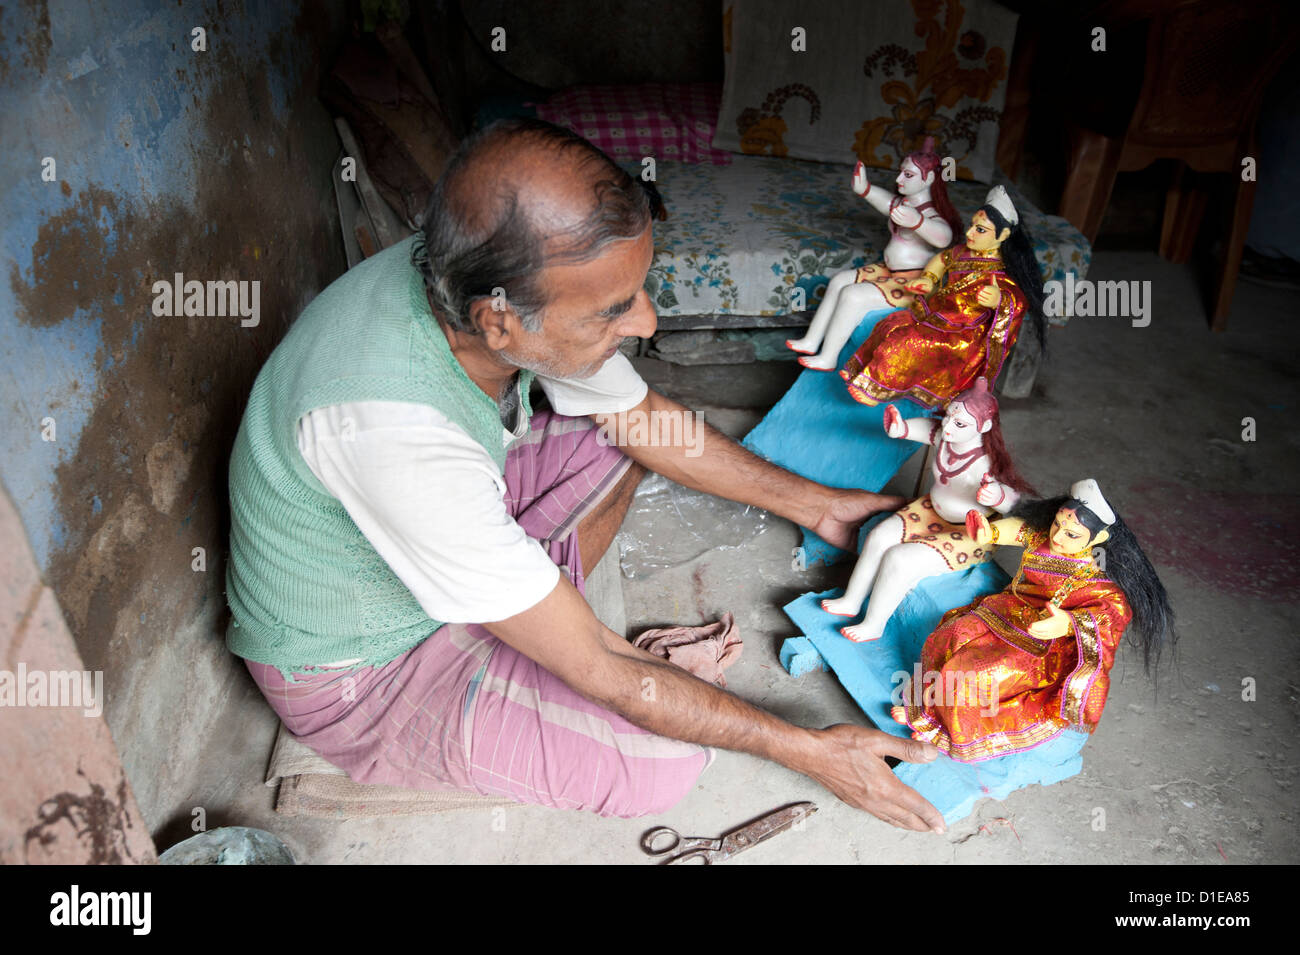 Sculpture with painted and dressed deities at festival pujas, Kumartuli district, Kolkata, West Bengal, India - Stock Image